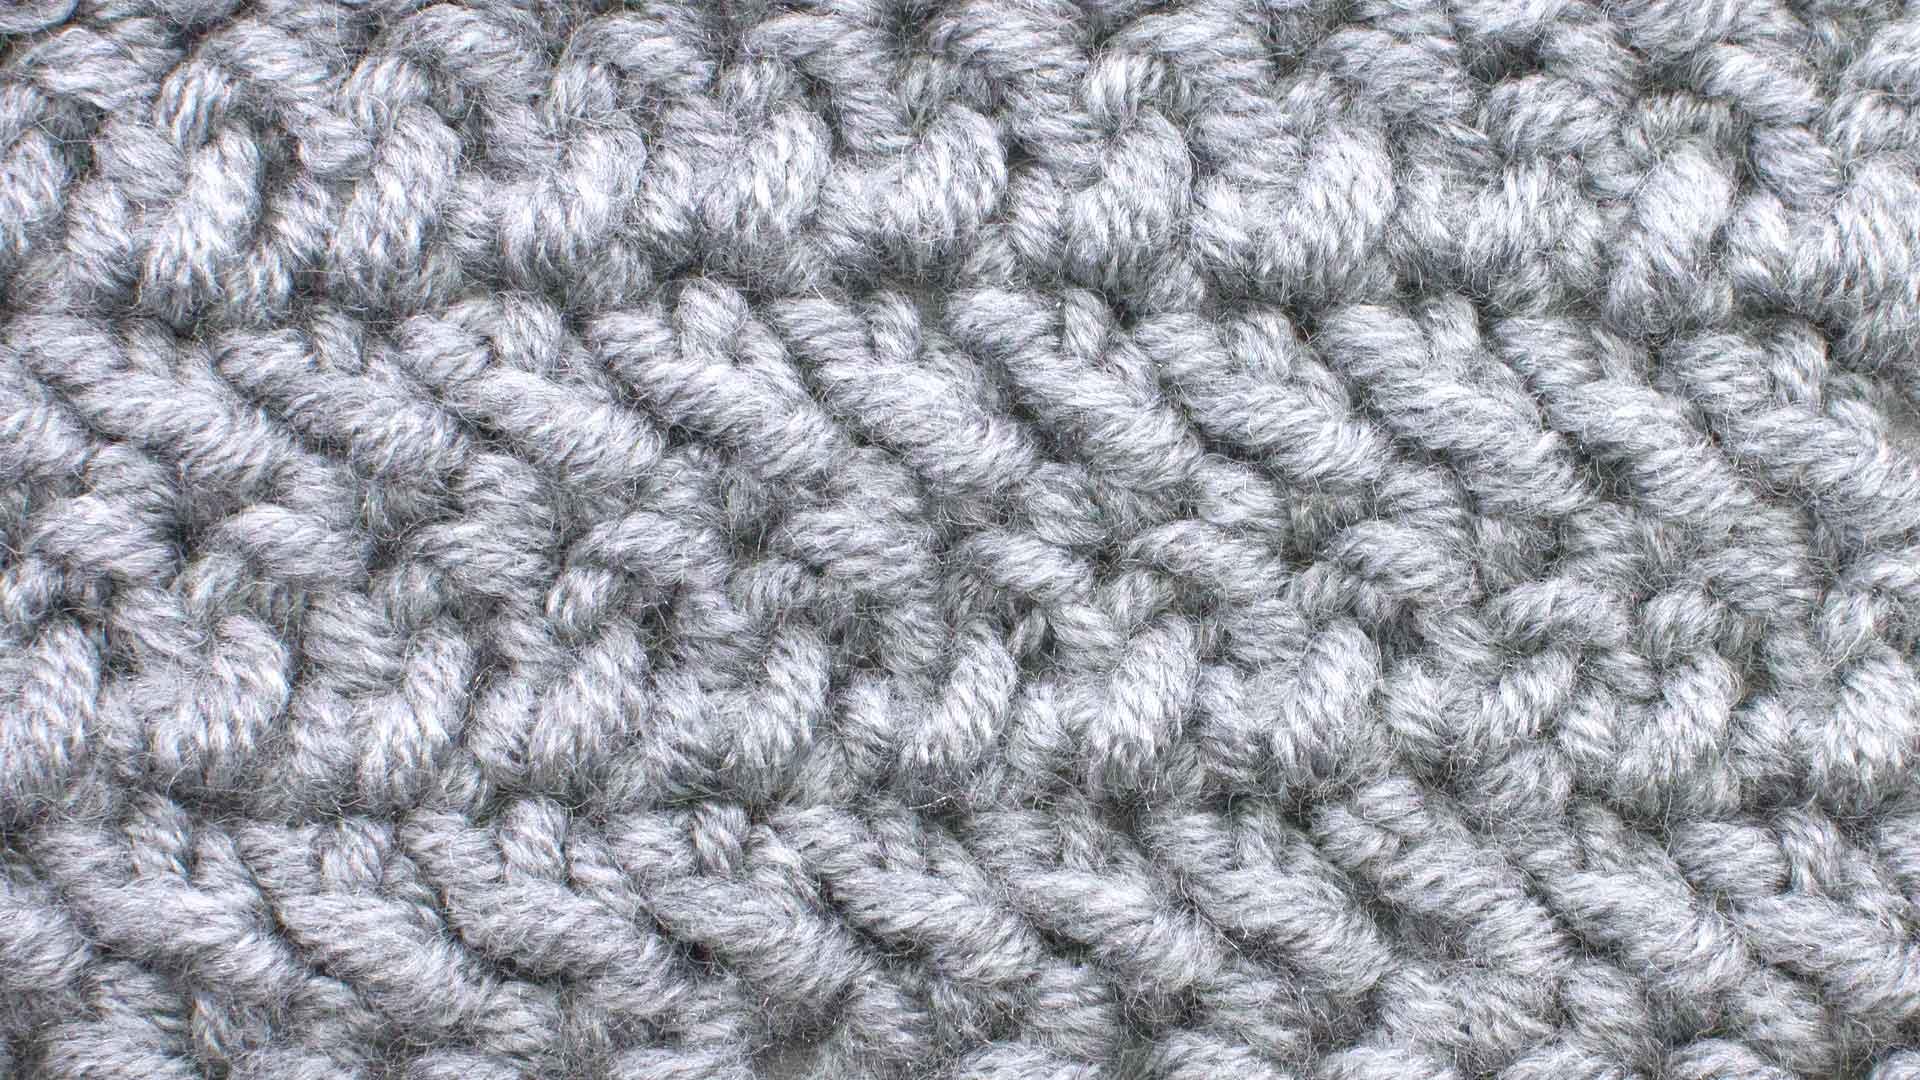 Herringbone DC (HBDC) :: Crochet :: New Stitch a Day